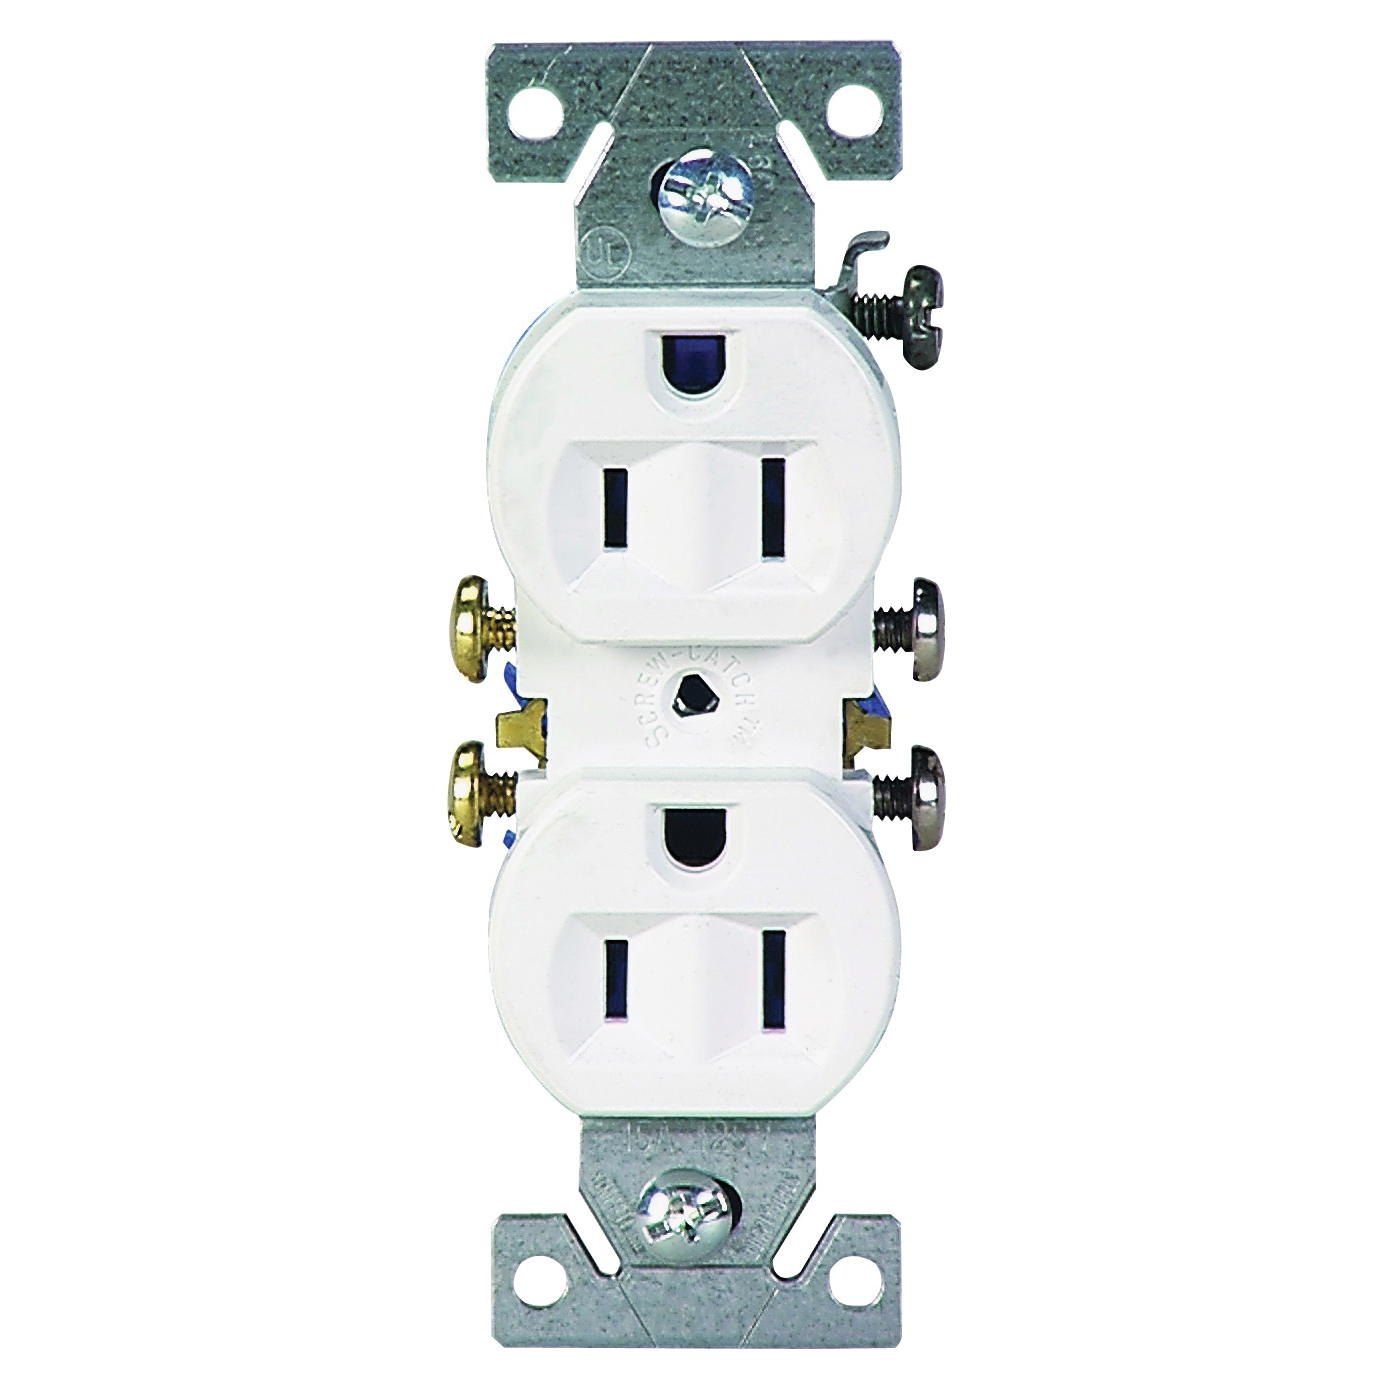 Picture of Eaton Wiring Devices C270W Duplex Receptacle, 2-Pole, 15 A, 125 V, Push-in, Side Wiring, NEMA: 5-15R, White